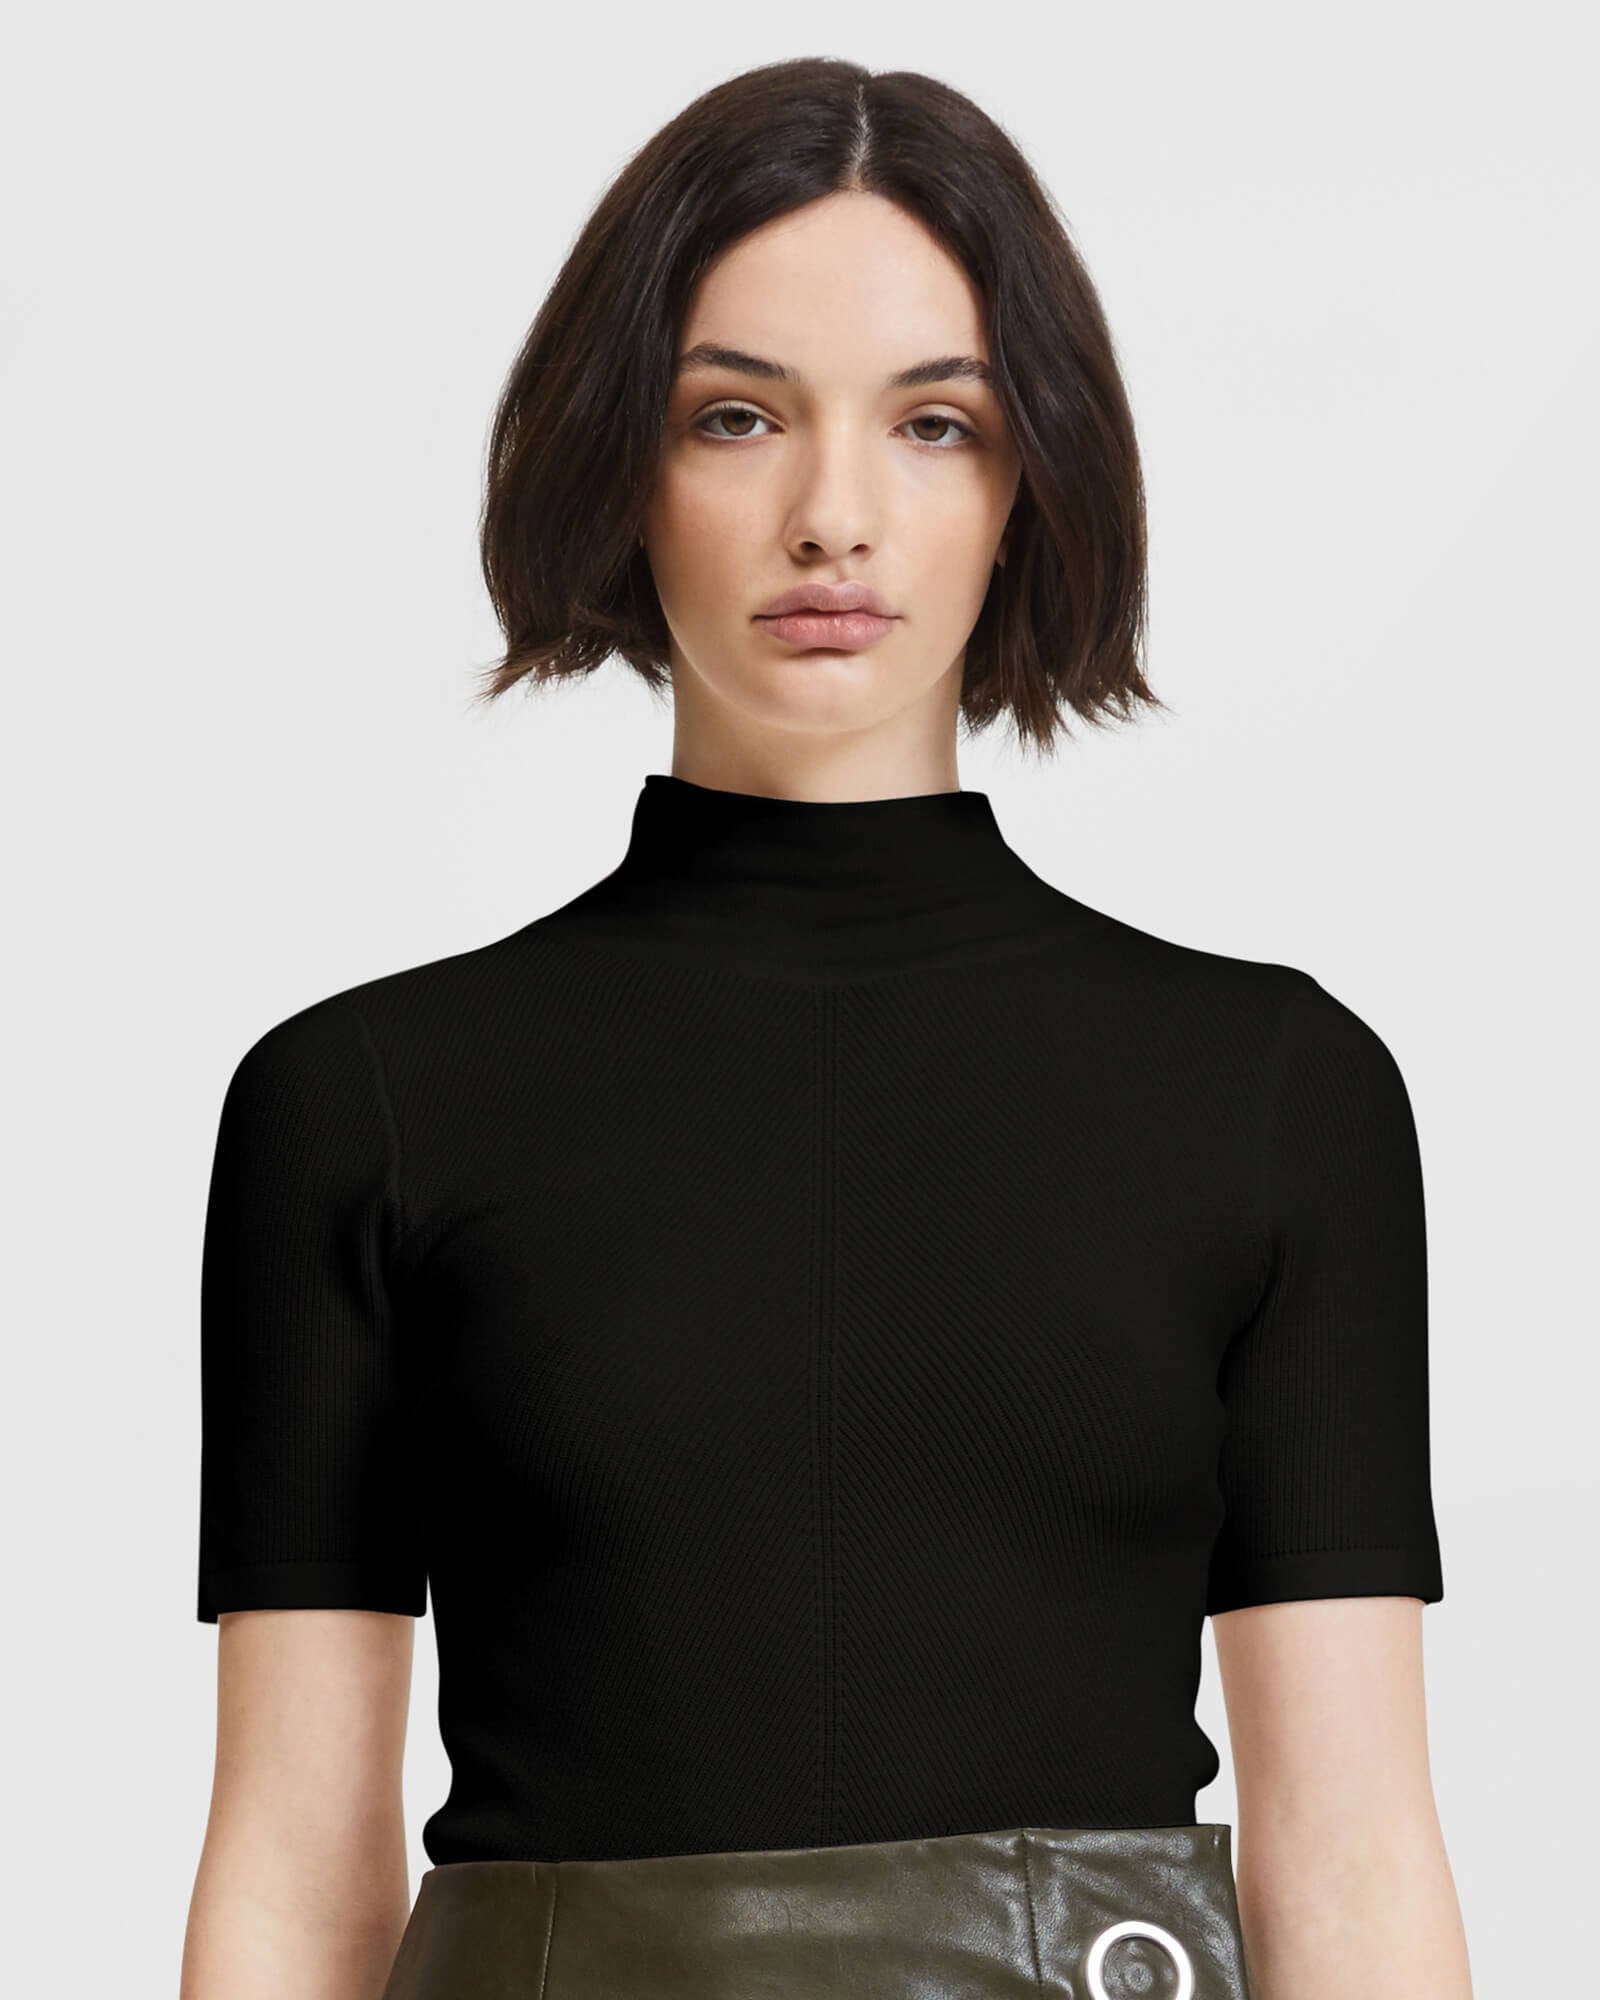 Midsleeve High Neck Top